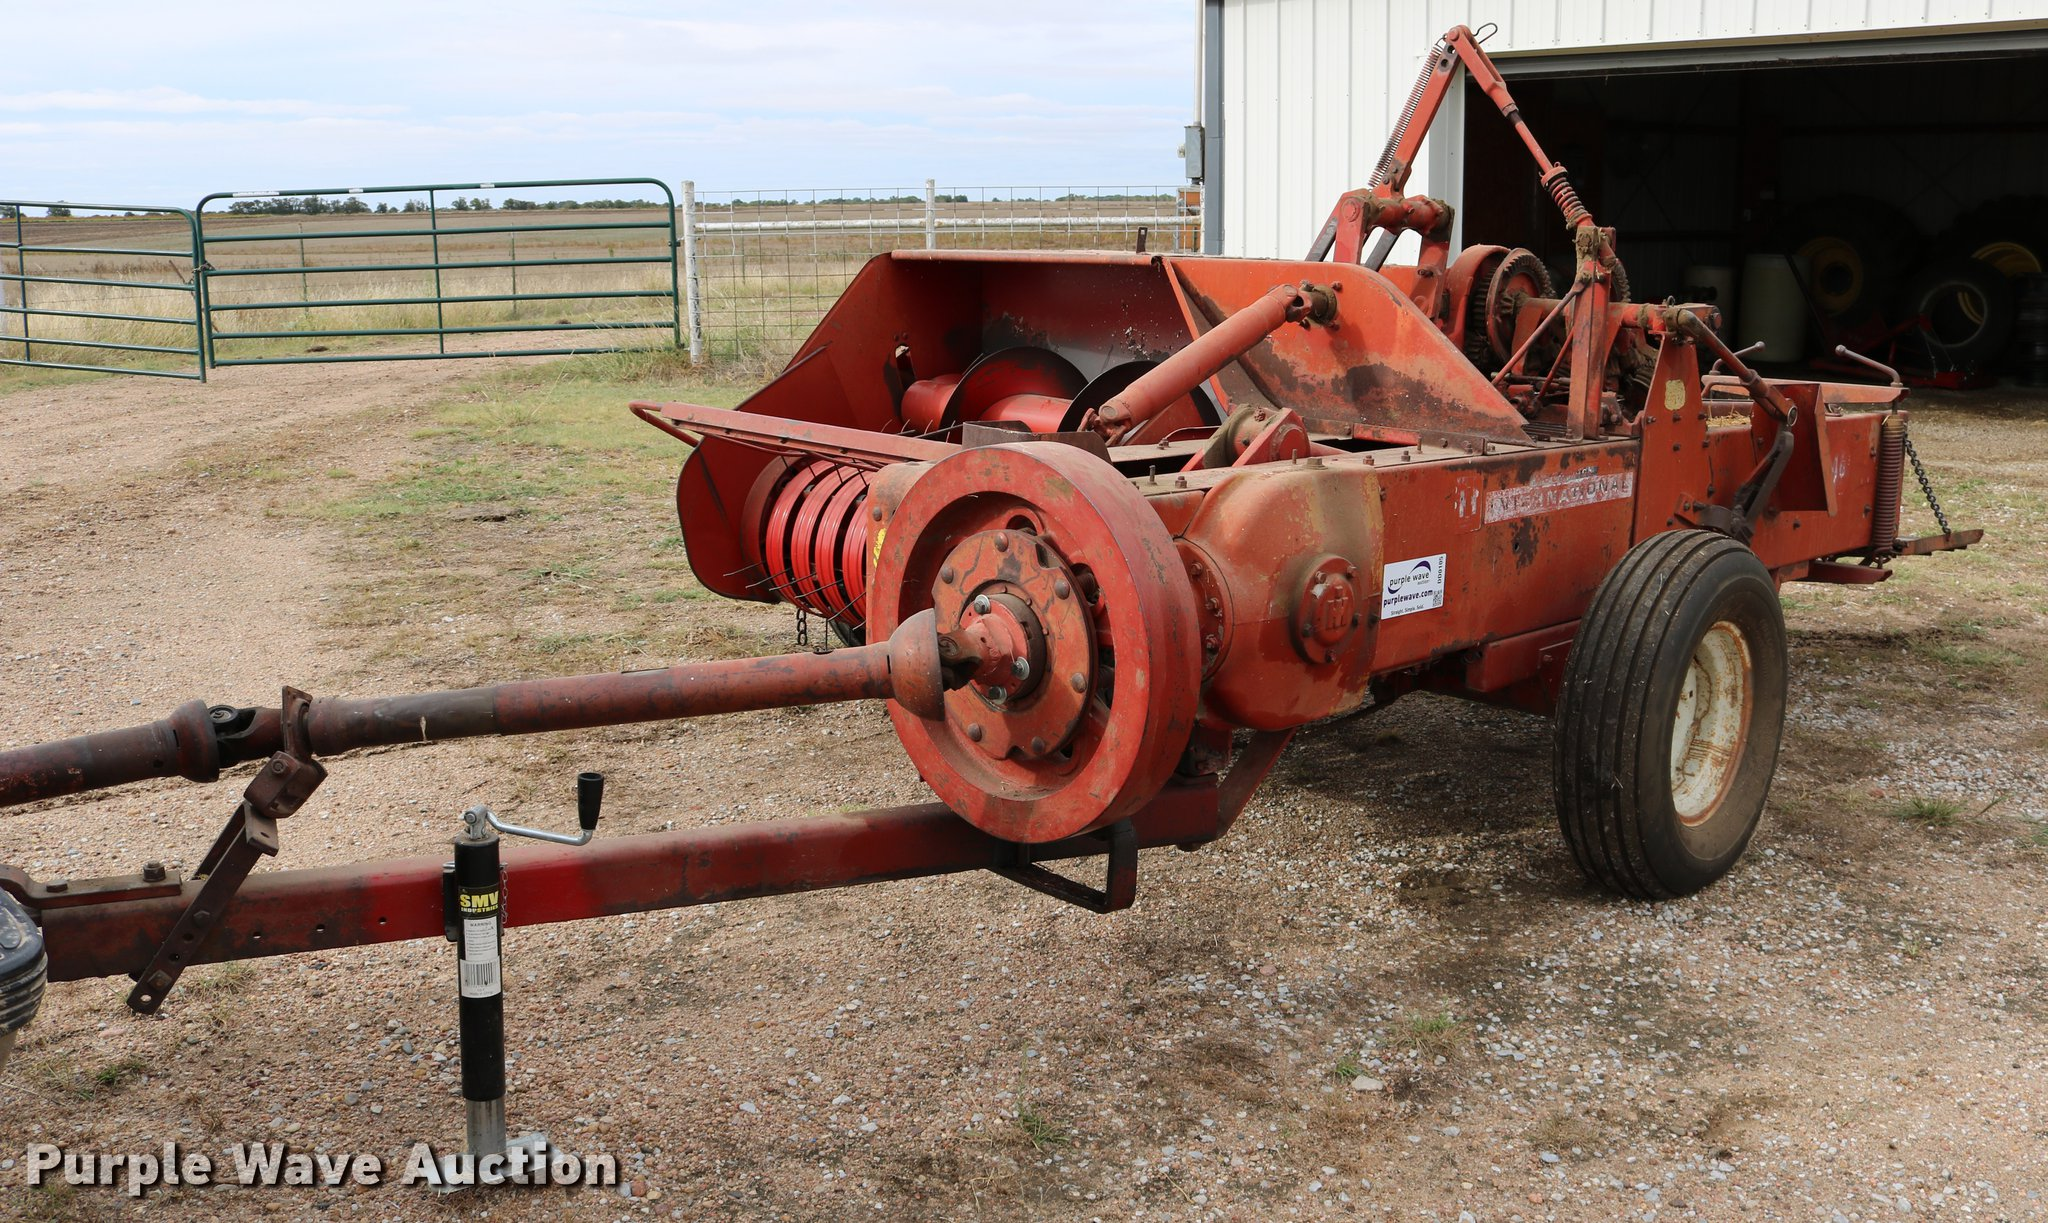 Also is there a serial number registry to determine what year this baler  was built?